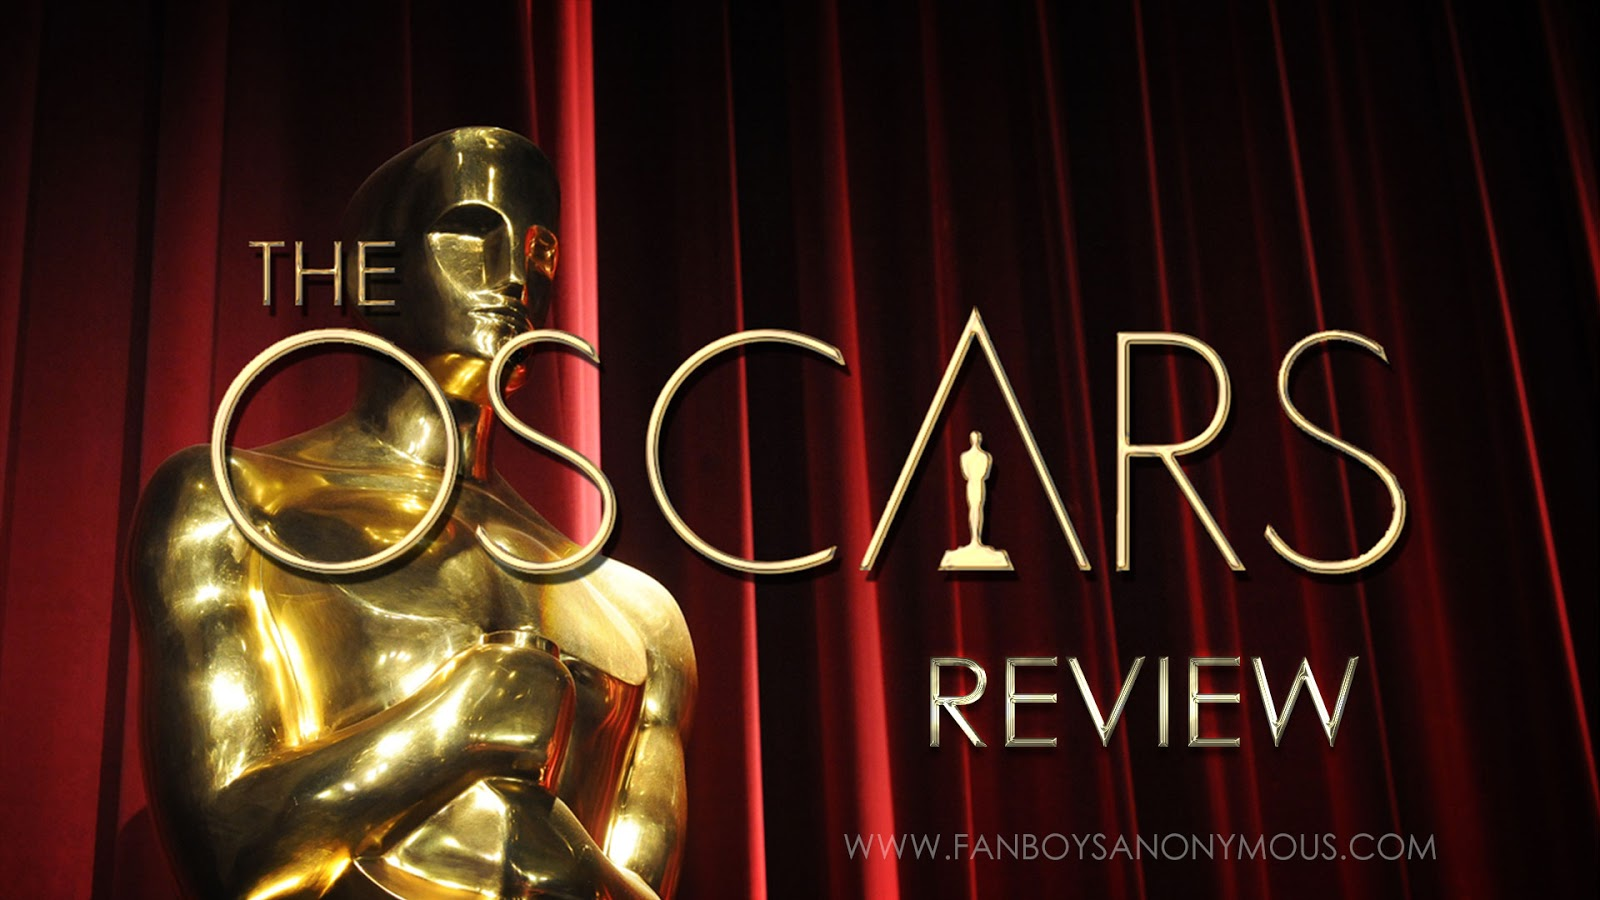 Full winners list of Oscars 2020 results Academy Awards 92nd Annual